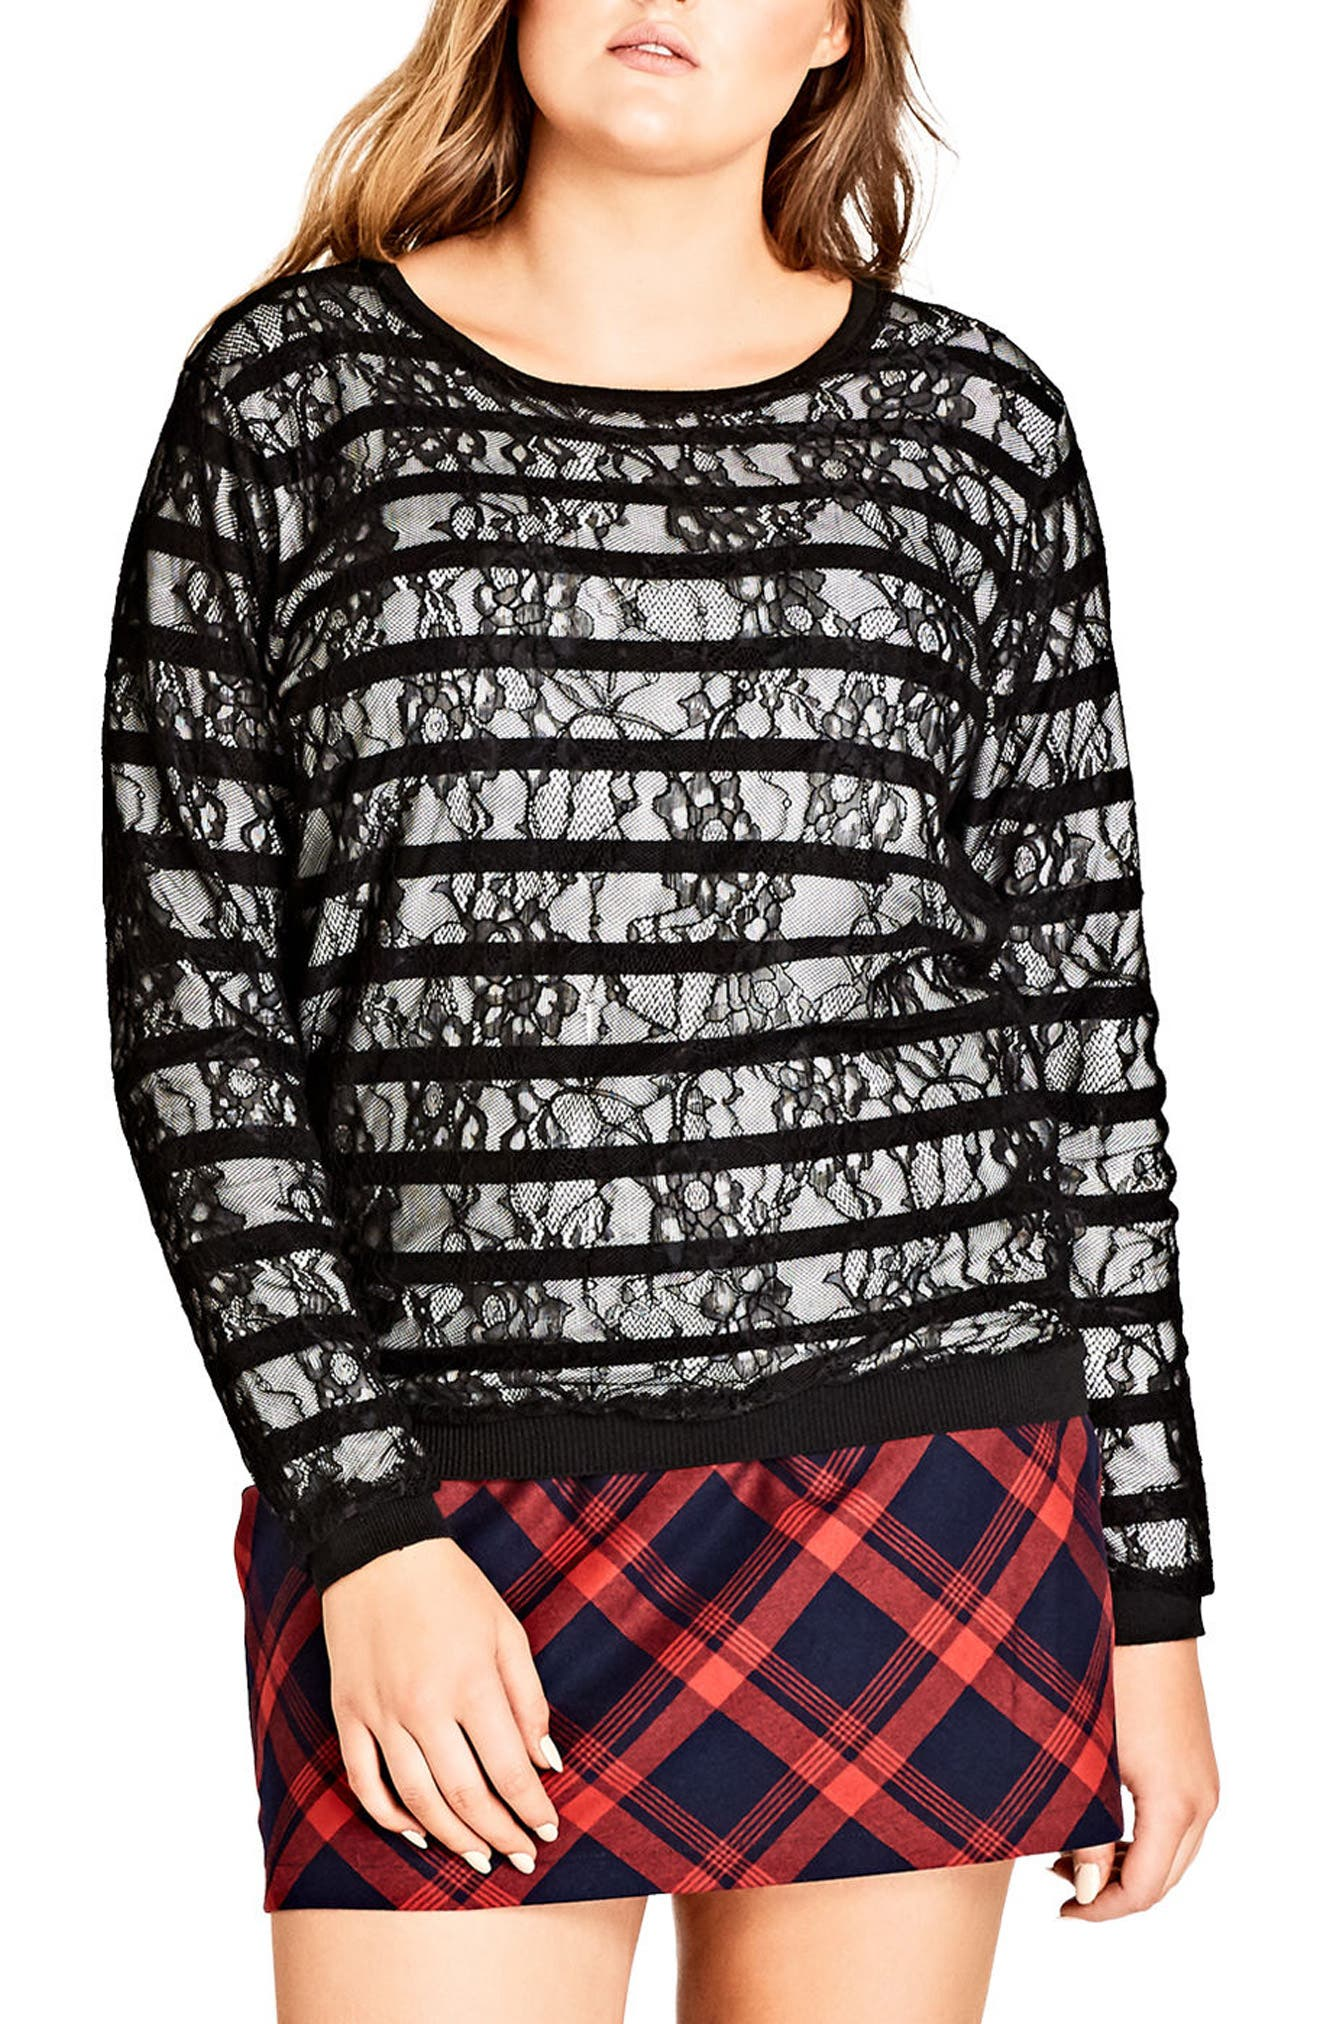 Alternate Image 1 Selected - City Chic Lace Stripe Sweater (Plus Size)